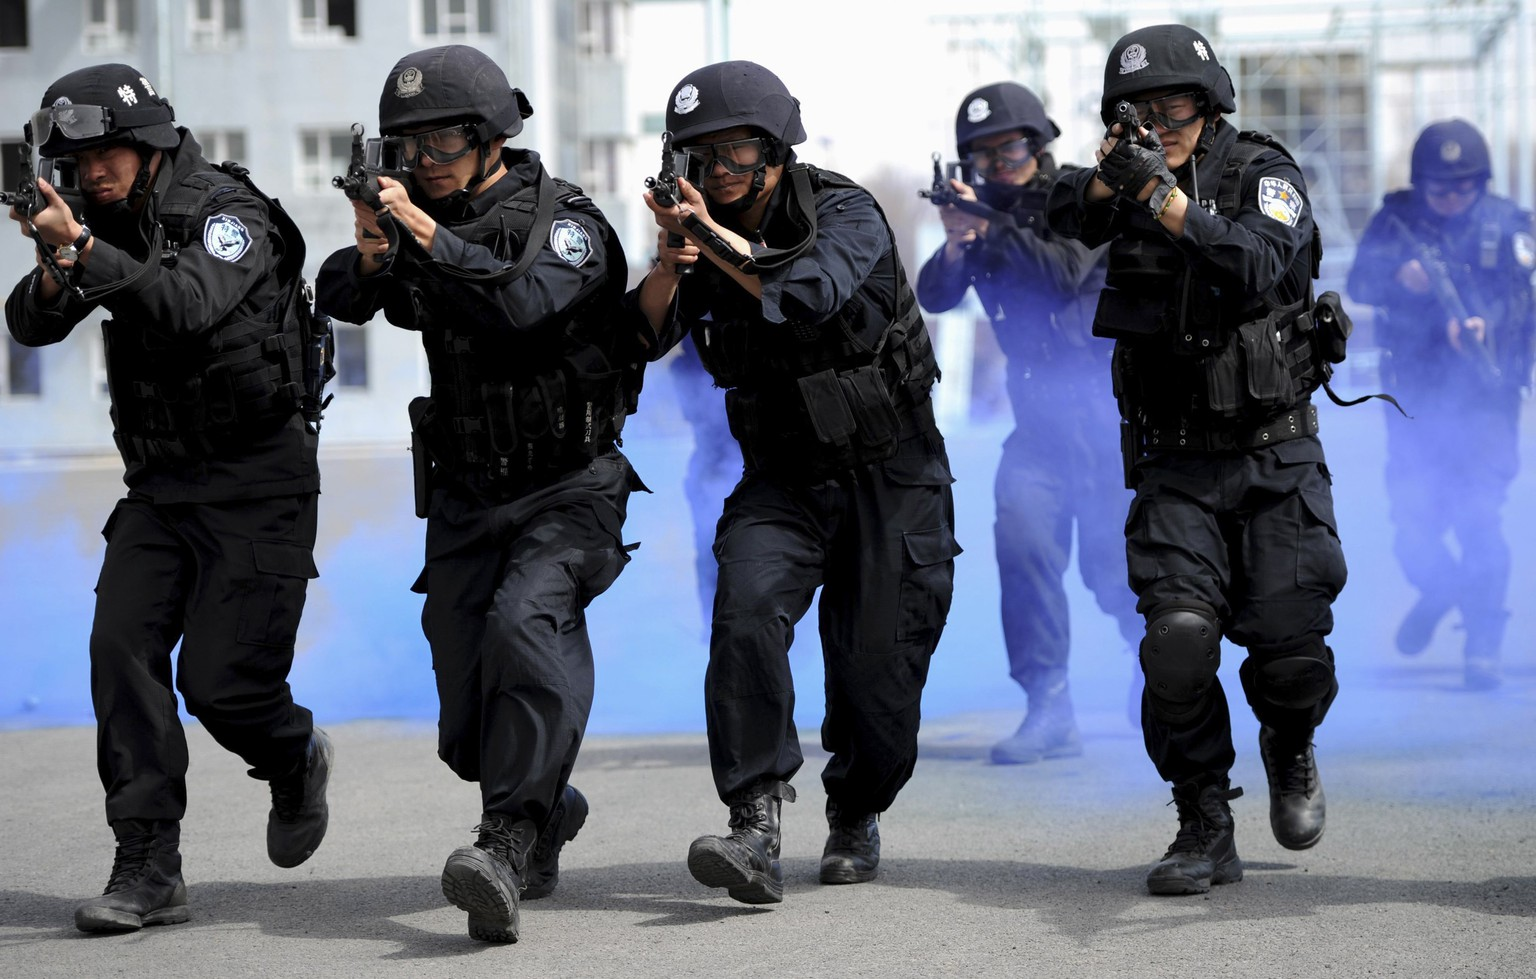 Policemen from the Special Weapons and Tactics (SWAT) team practice during a drill in Urumqi, Xinjiang Autonomous Region, April 7, 2014.  REUTERS/Stringer (CHINA - Tags: MILITARY CRIME LAW) CHINA OUT. NO COMMERCIAL OR EDITORIAL SALES IN CHINA